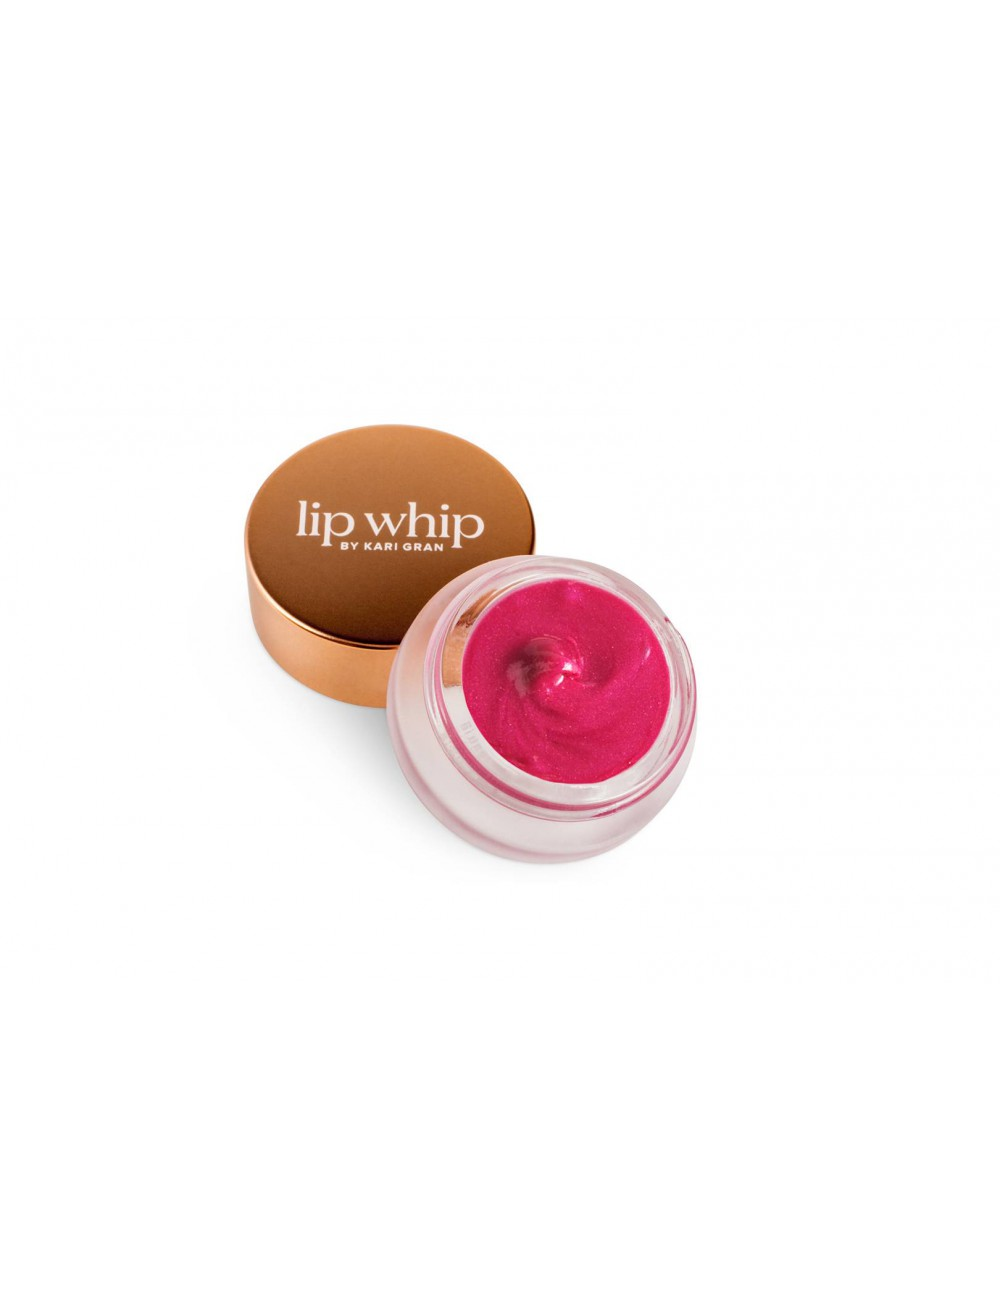 KARI GRAN lip whip 7ml-Jolene